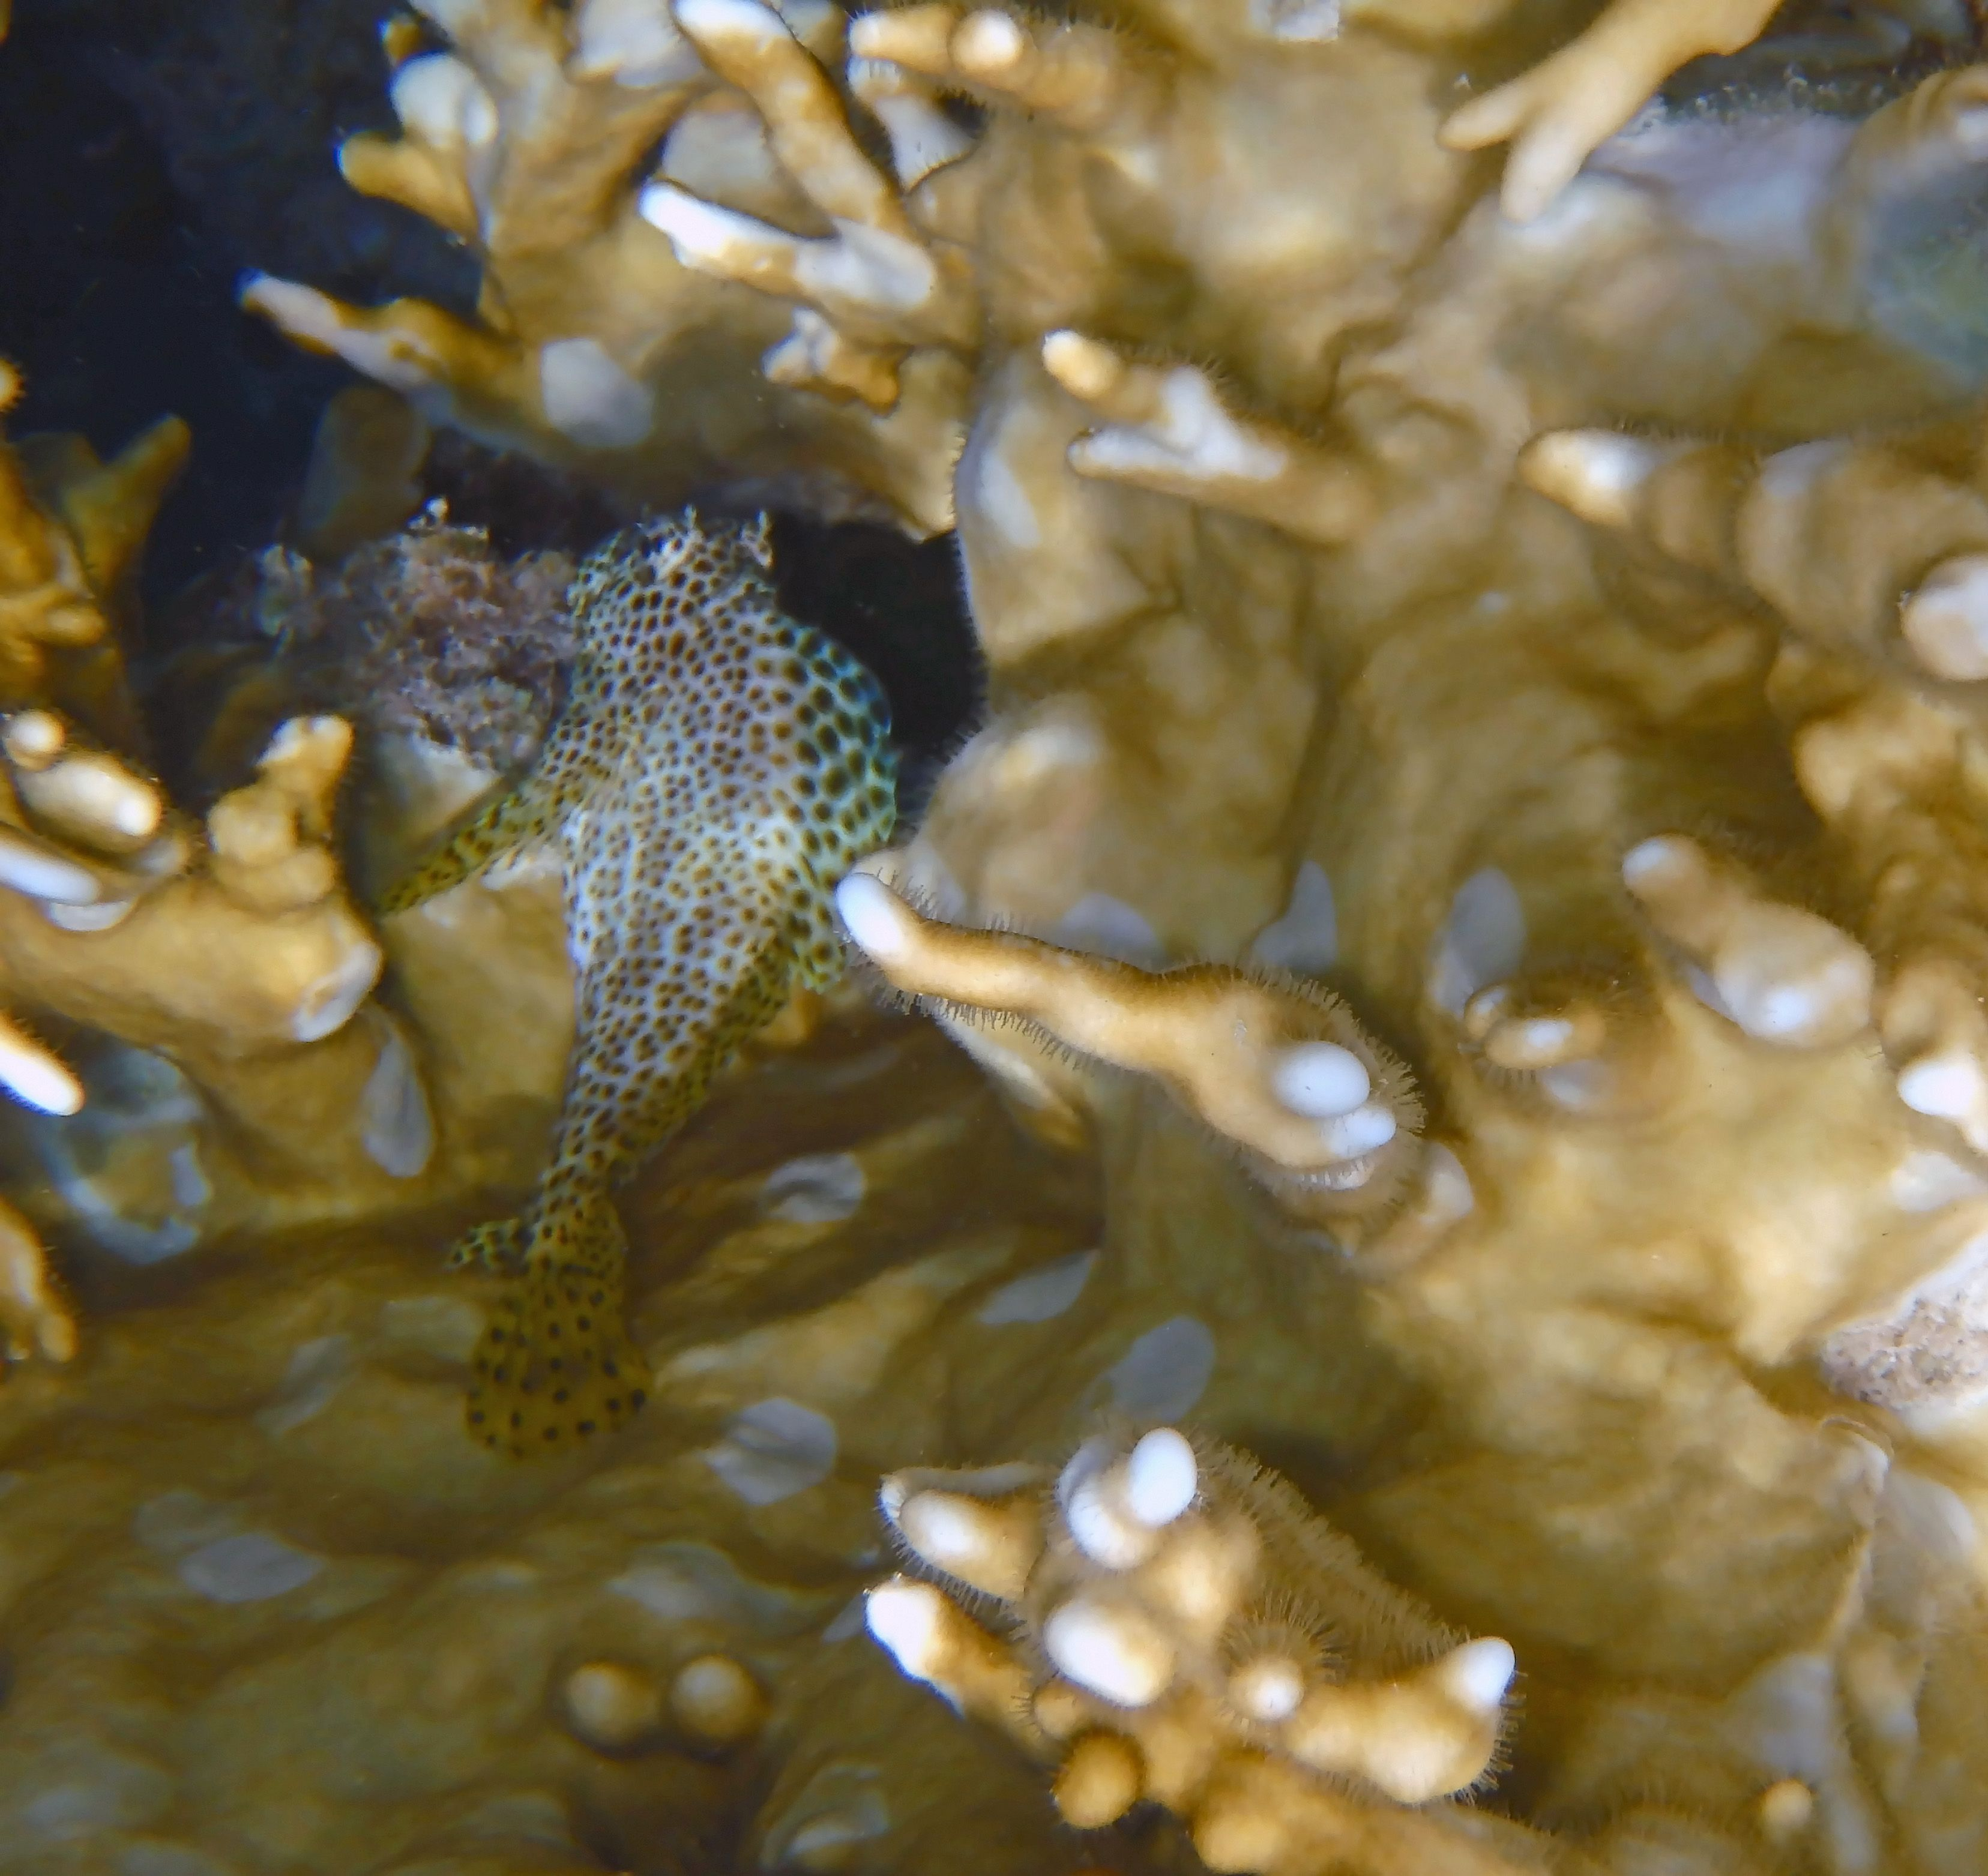 Baby among the corals